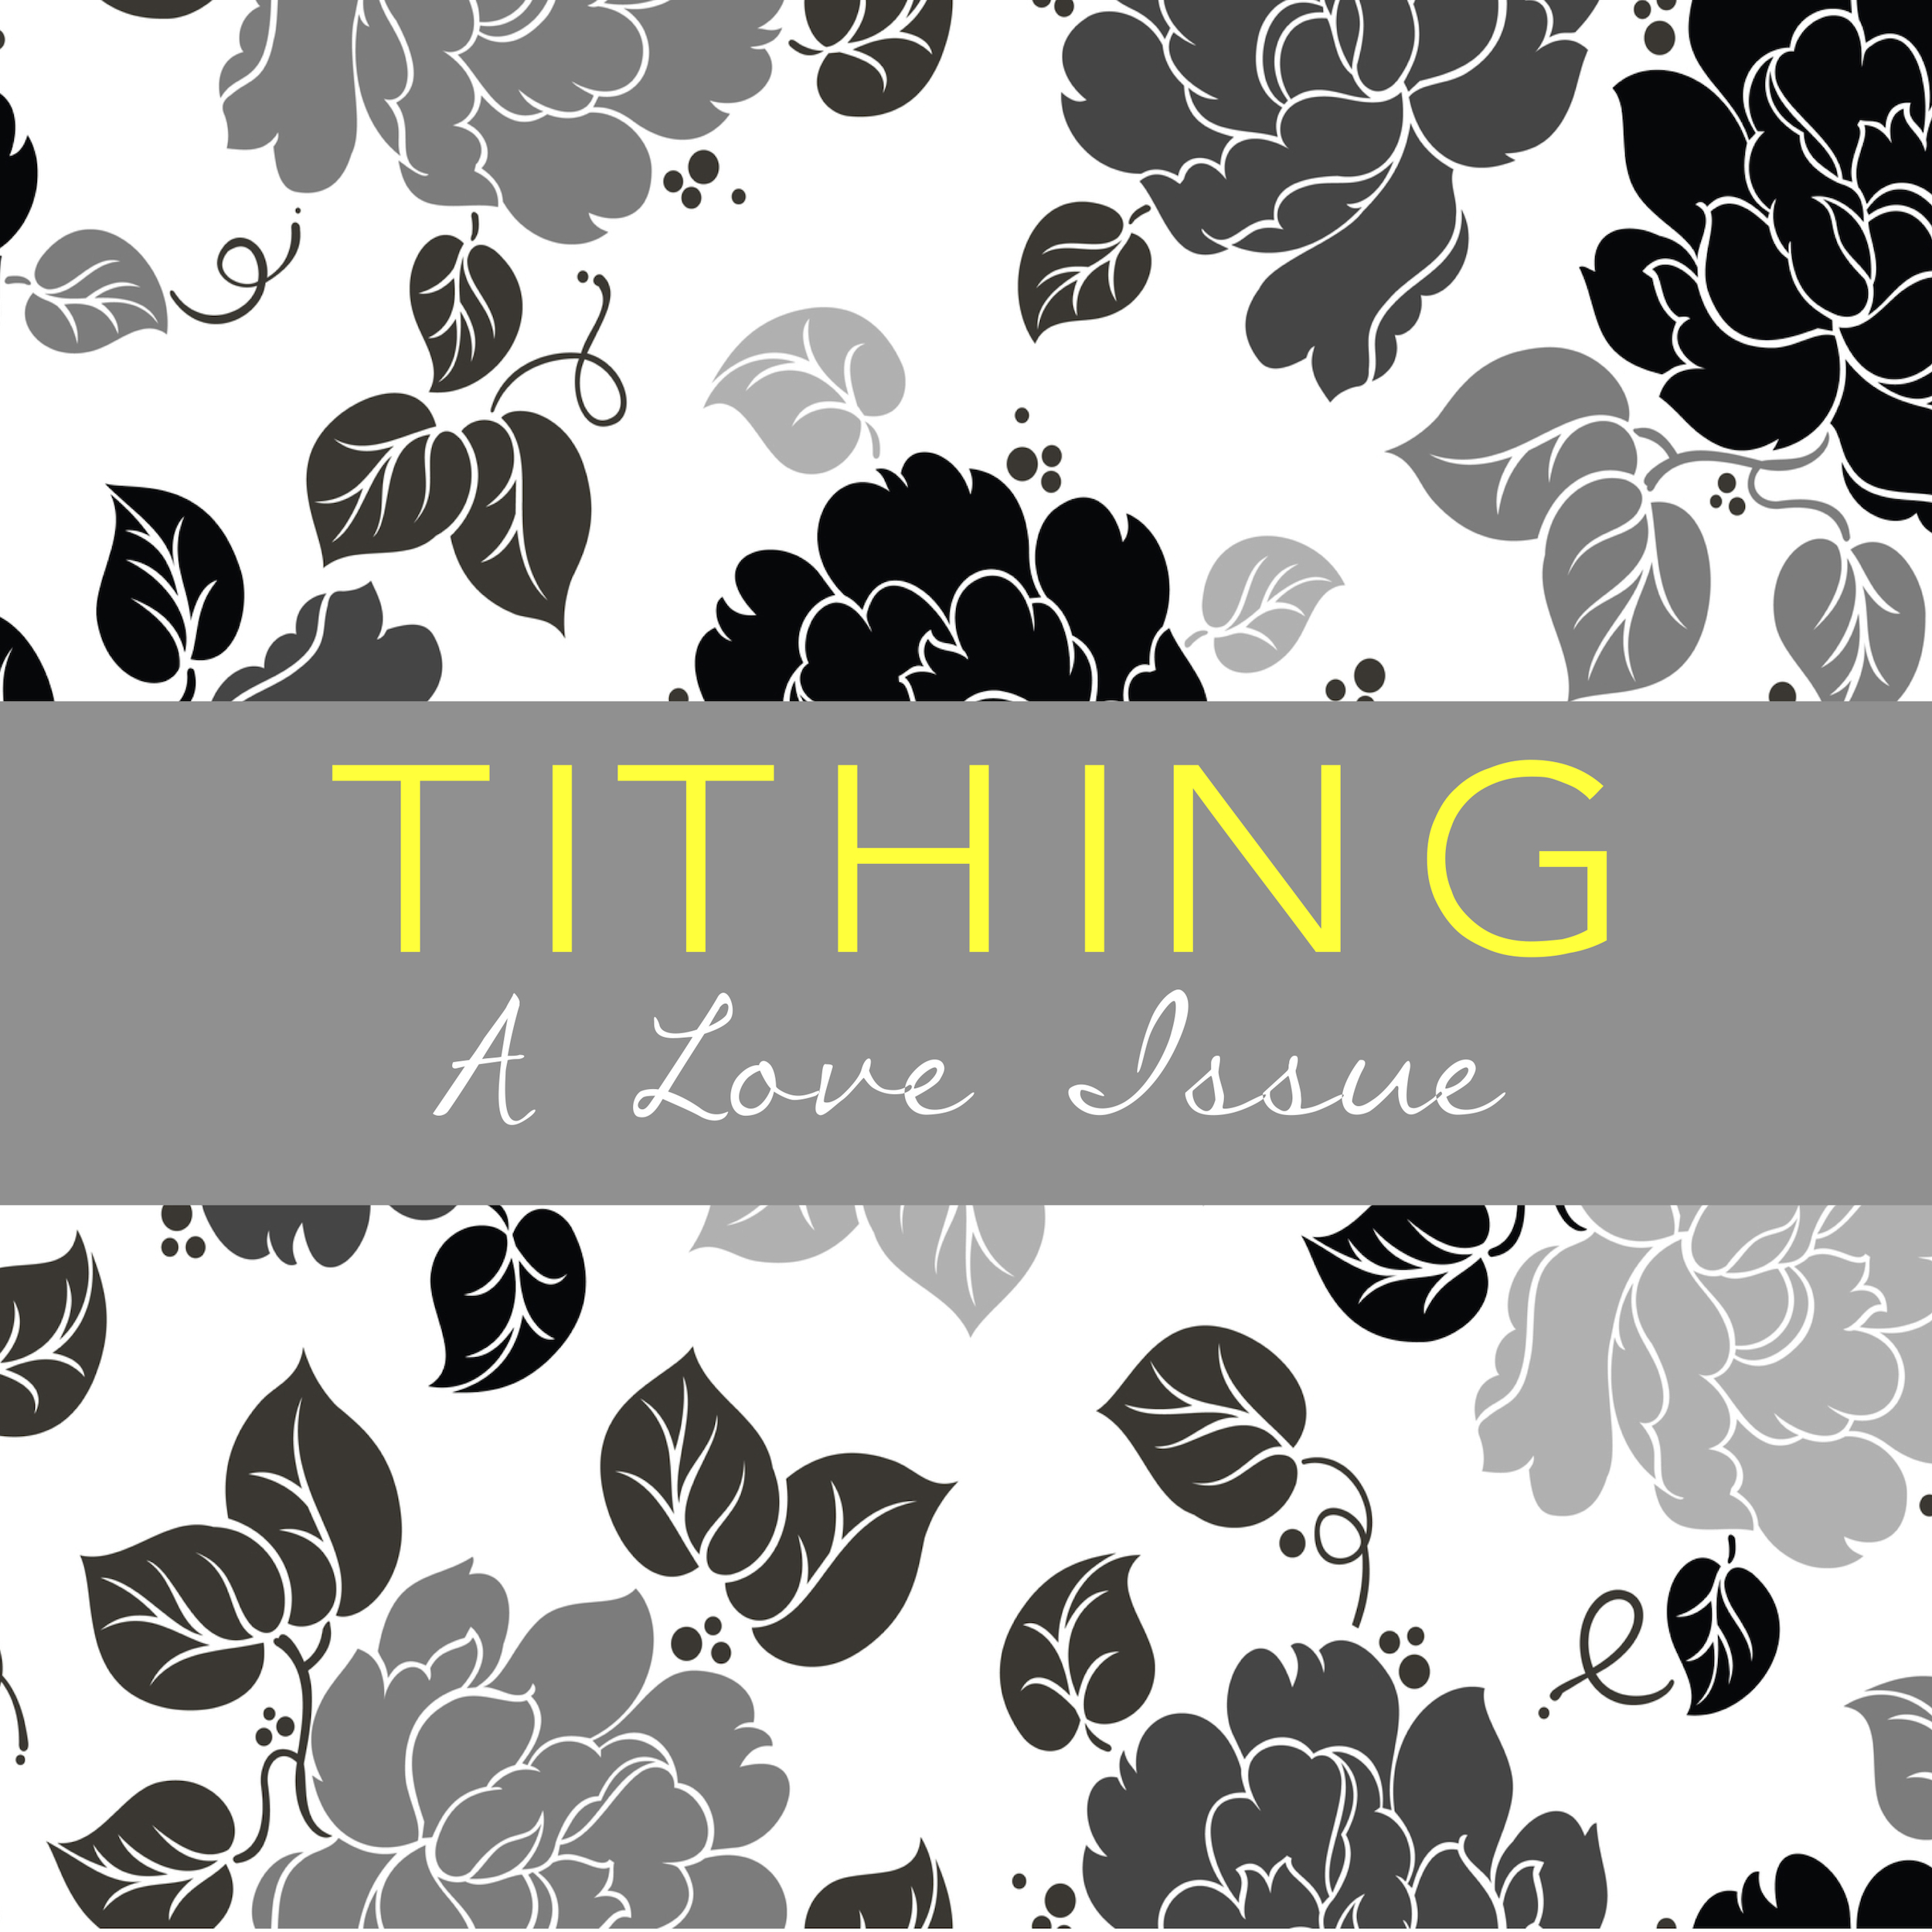 Tithing Cover Pic.jpg